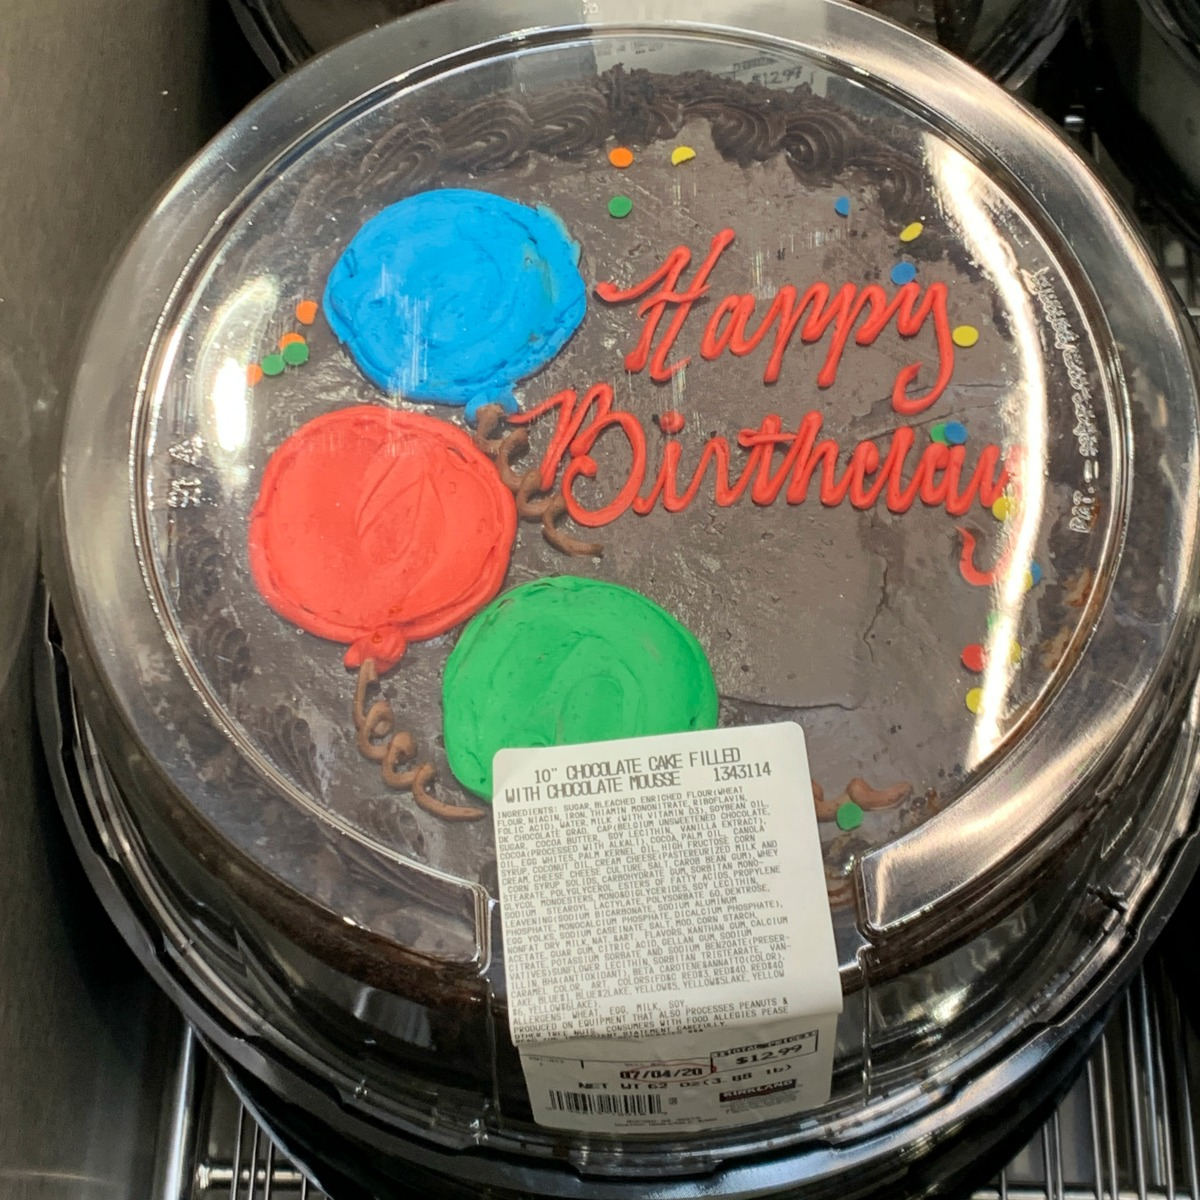 chocolate cake from Costco that reads Happy Birthday with balloons